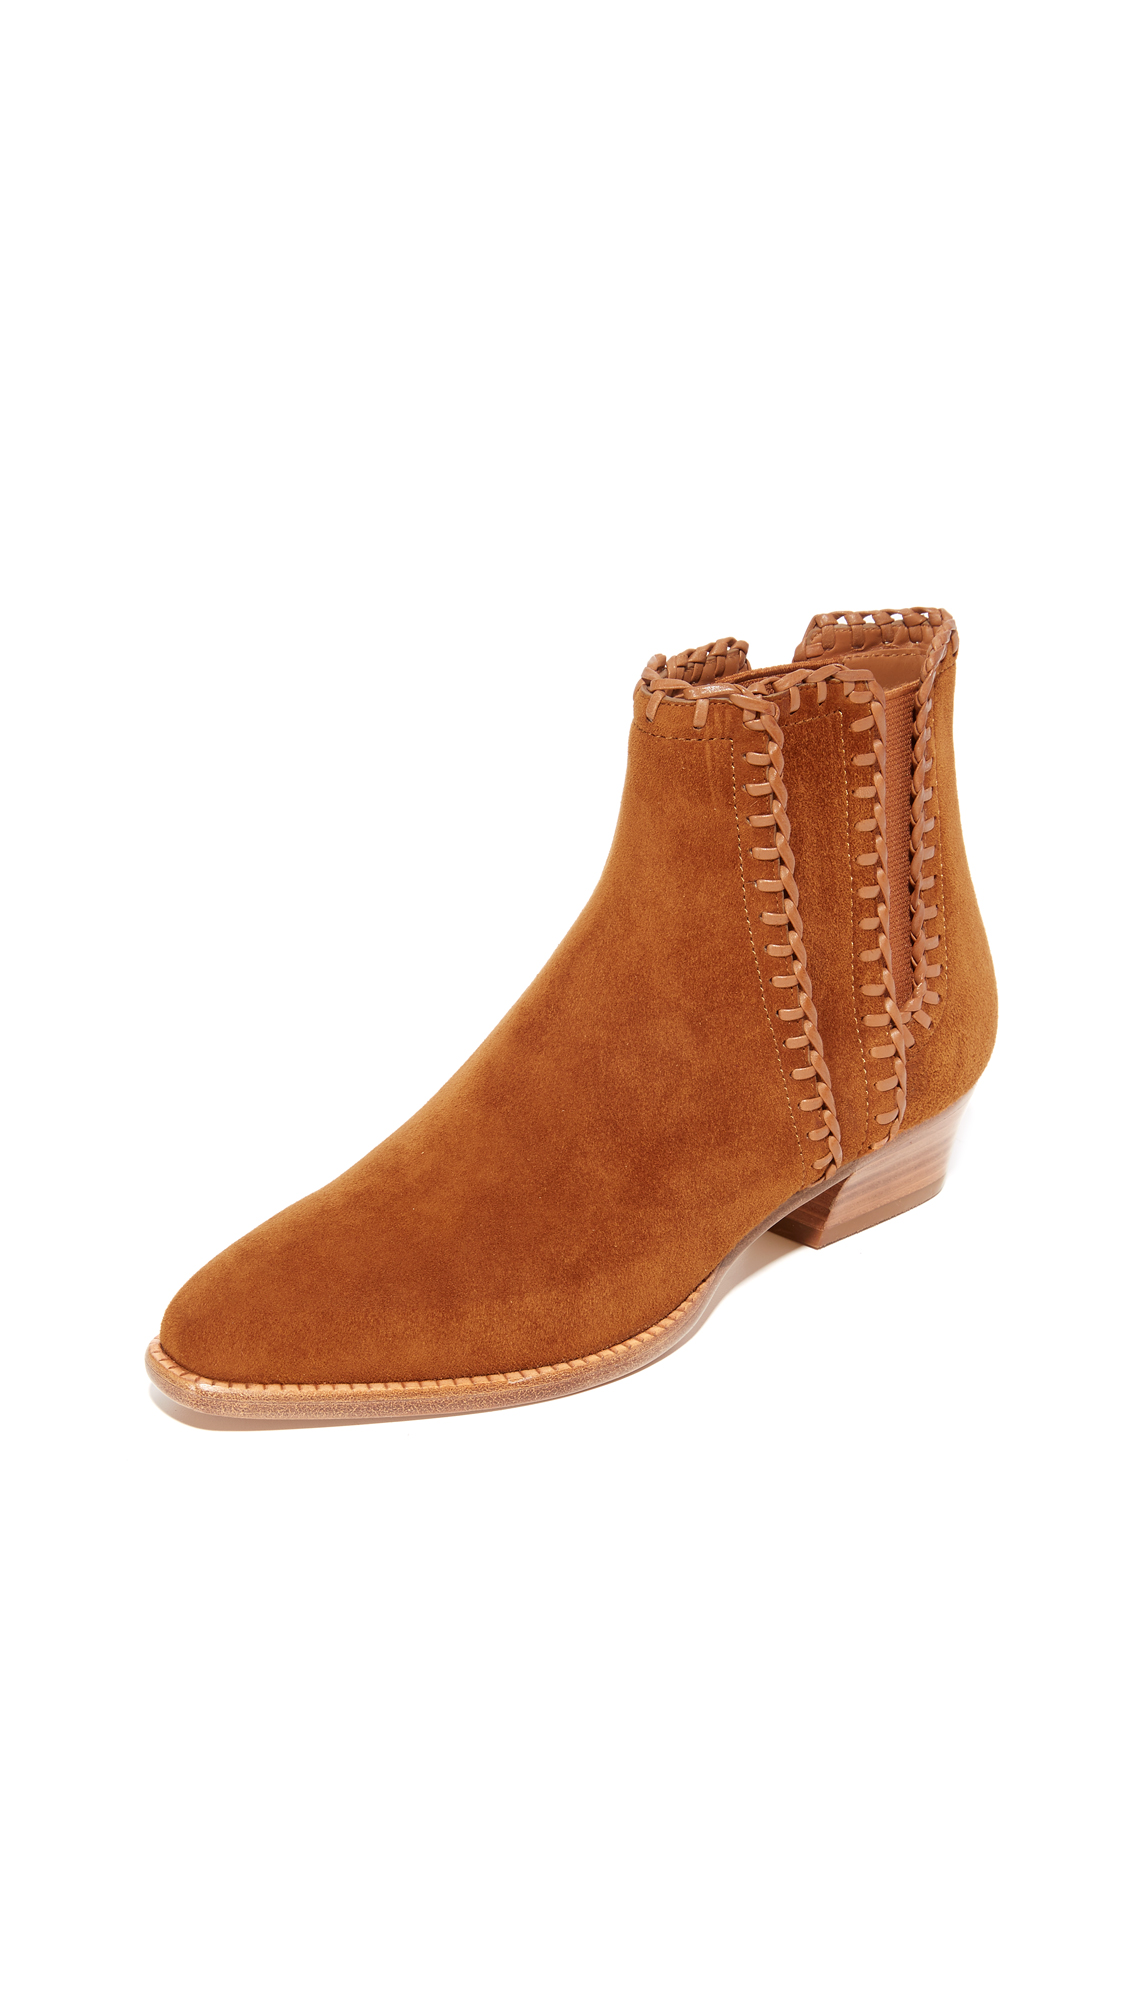 Michael Kors Collection Presley Flat Booties - Dk Luggage